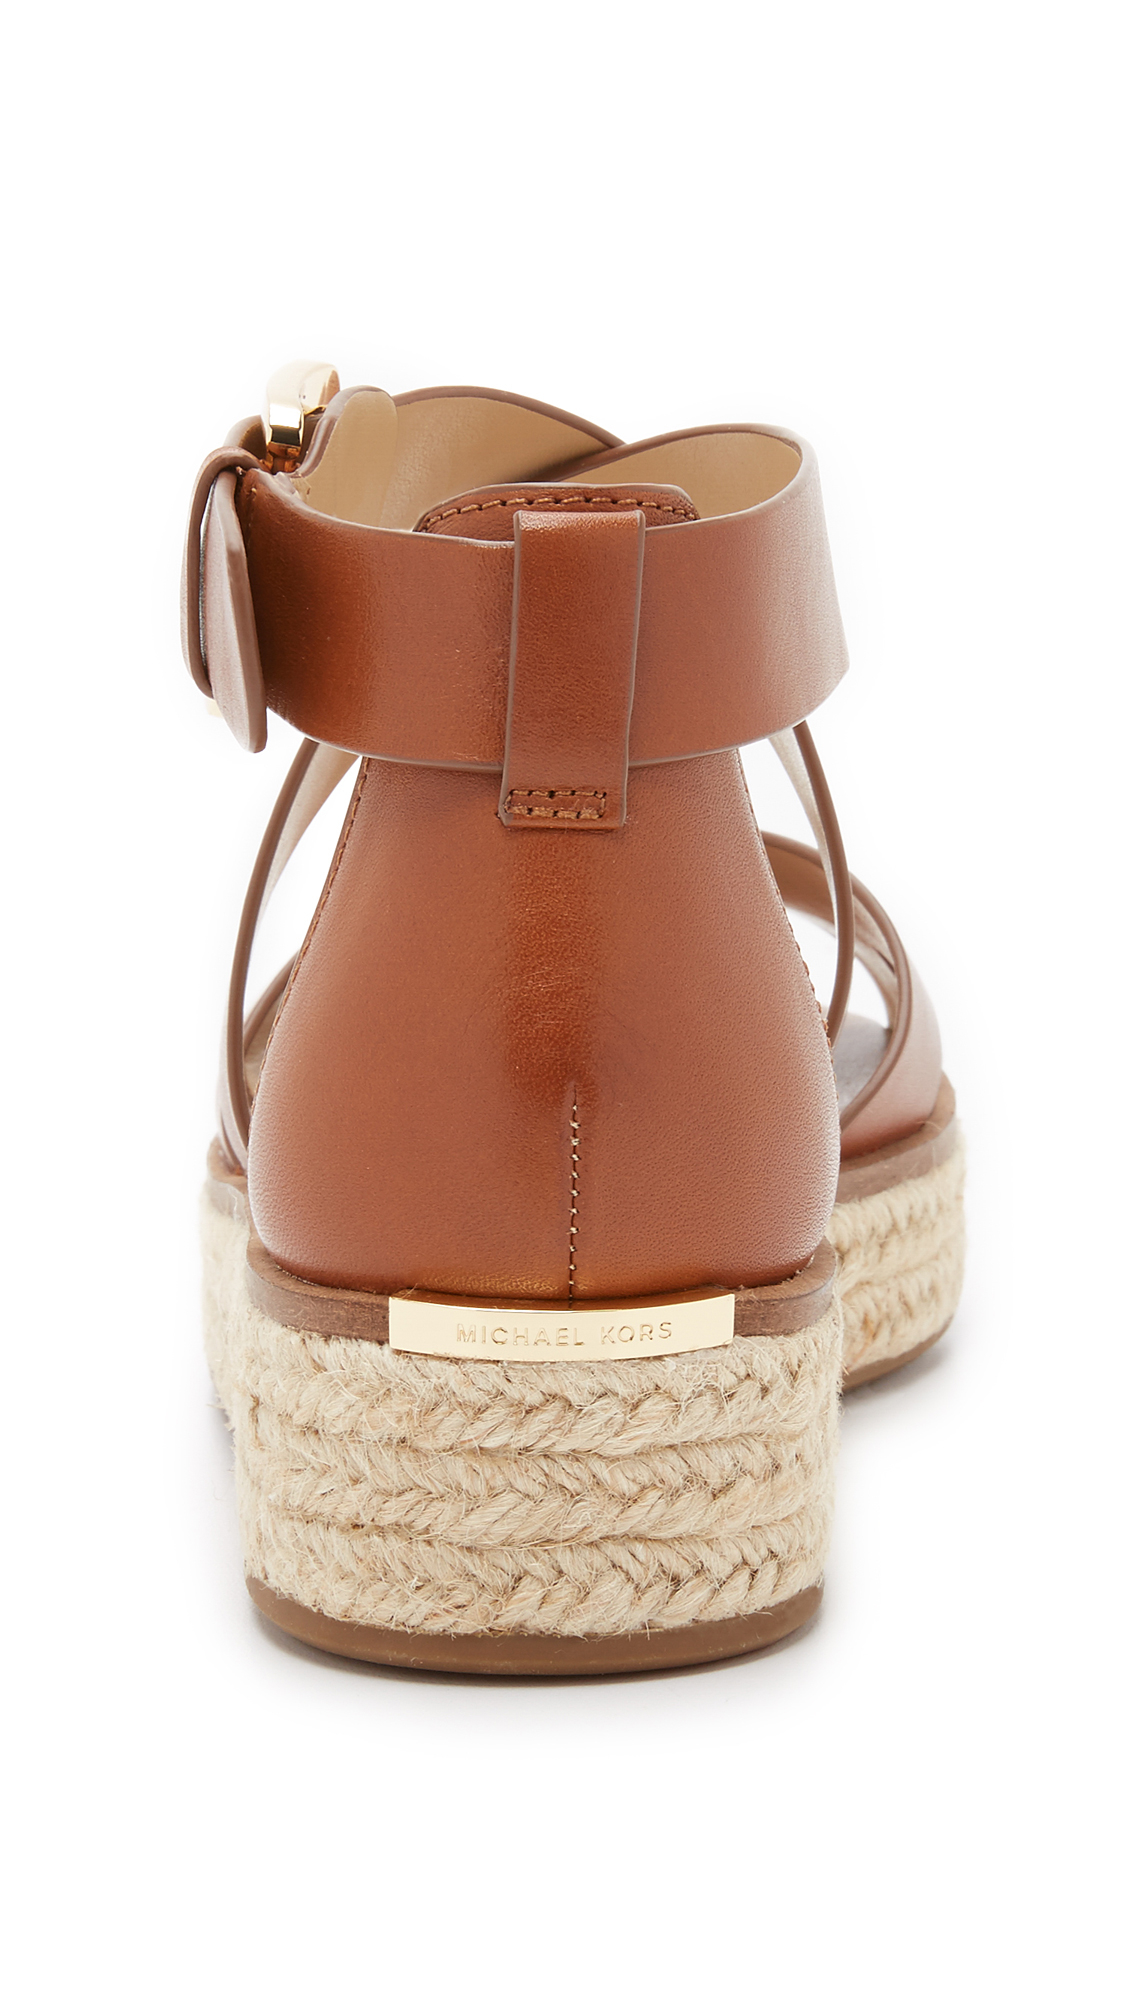 19547a43e68 Lyst - MICHAEL Michael Kors Darby Sandals in Brown